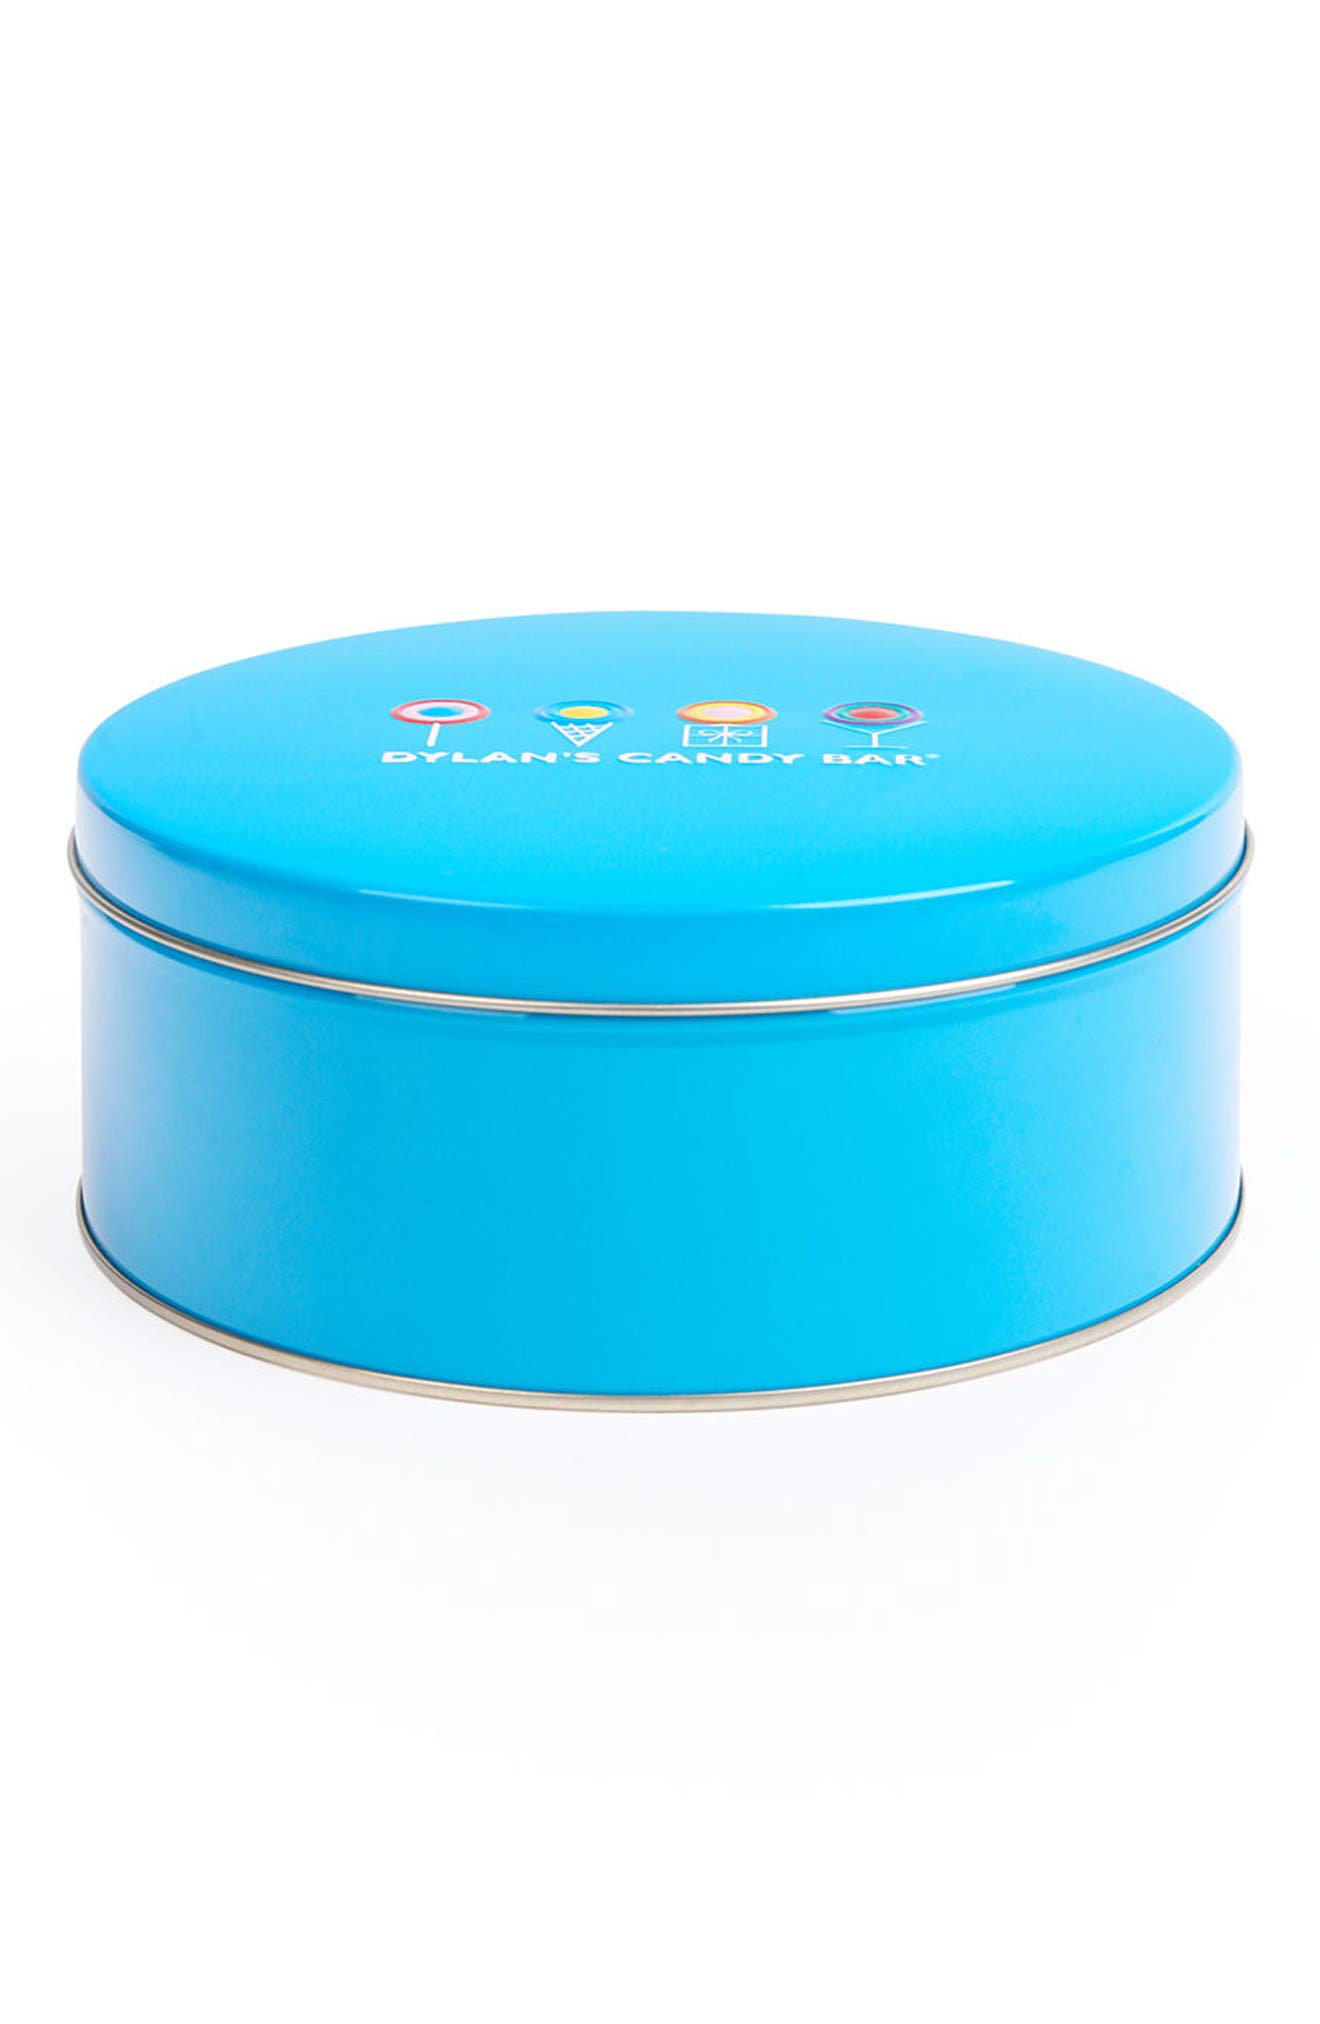 Signature Chocolate Trio Tin,                             Alternate thumbnail 2, color,                             BLUE